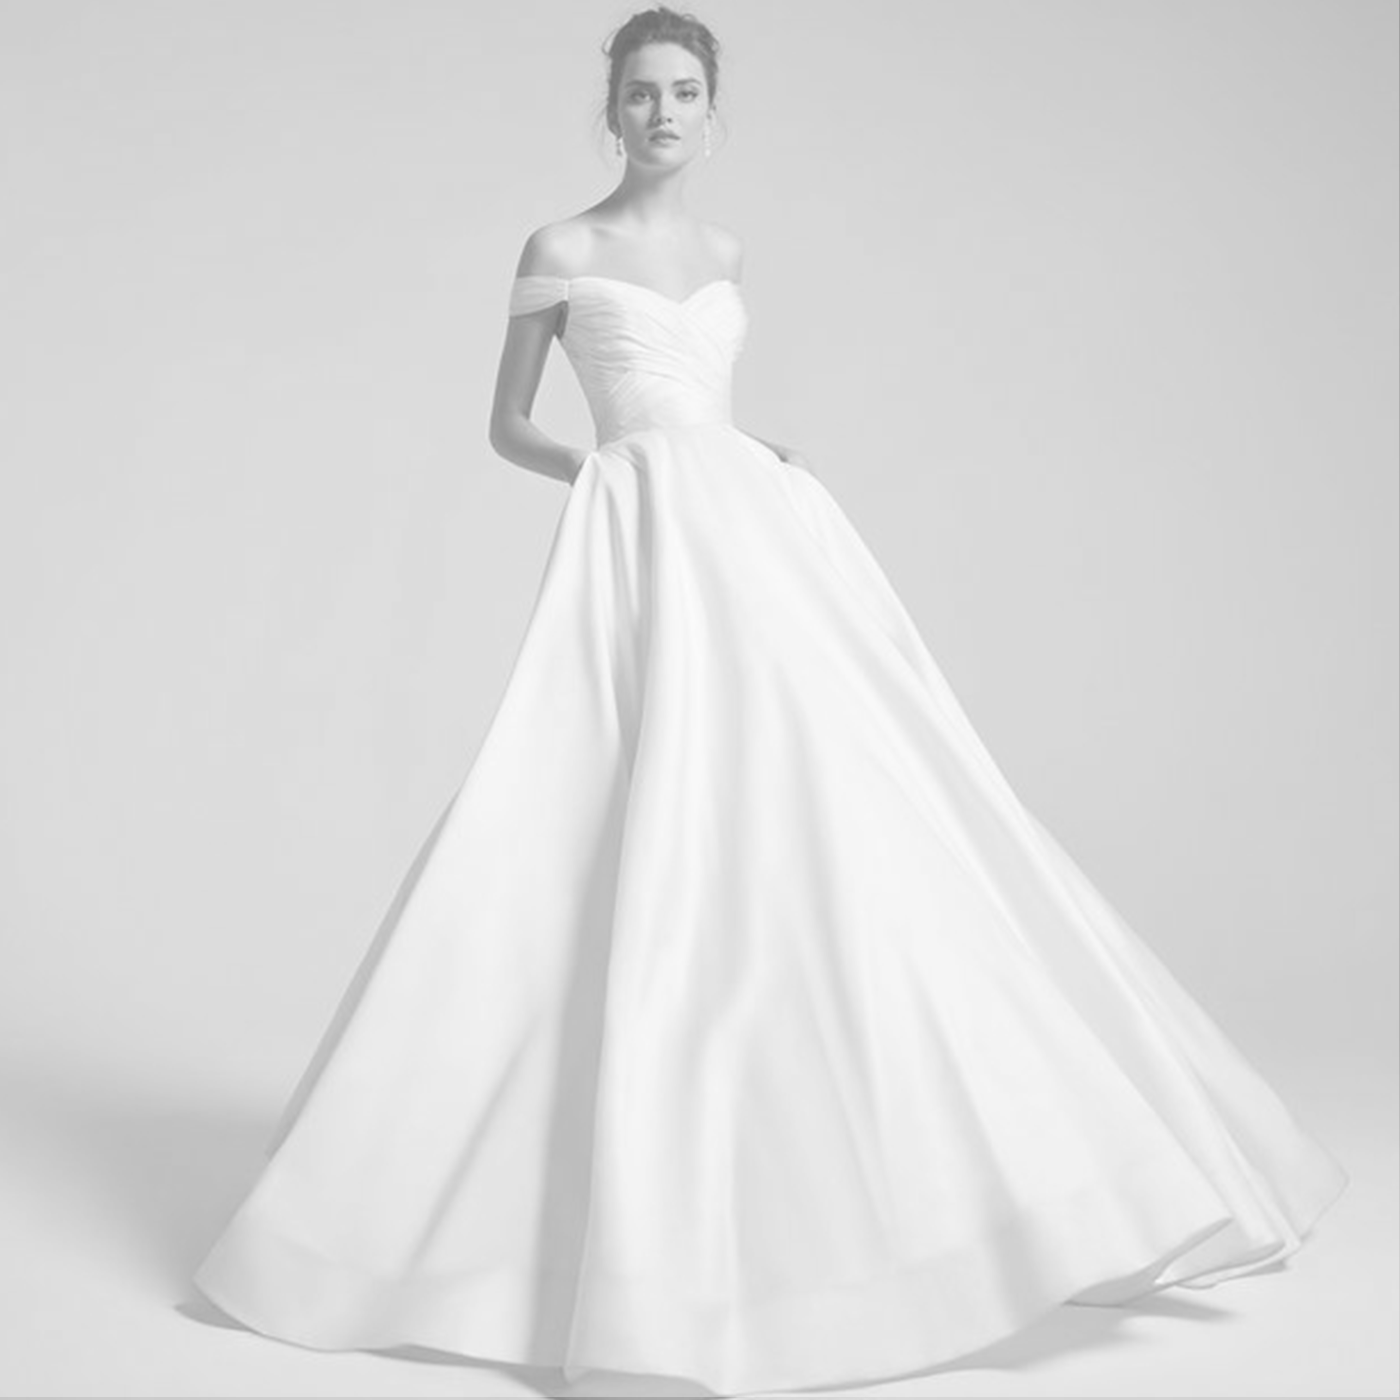 Anne Barge - Her crisp and classic designs partnered with luxurious fabrics and exquisite details make for a finished look that is refined, feminine, and classic. an elegant look with timeless appeal.starting at $3,000